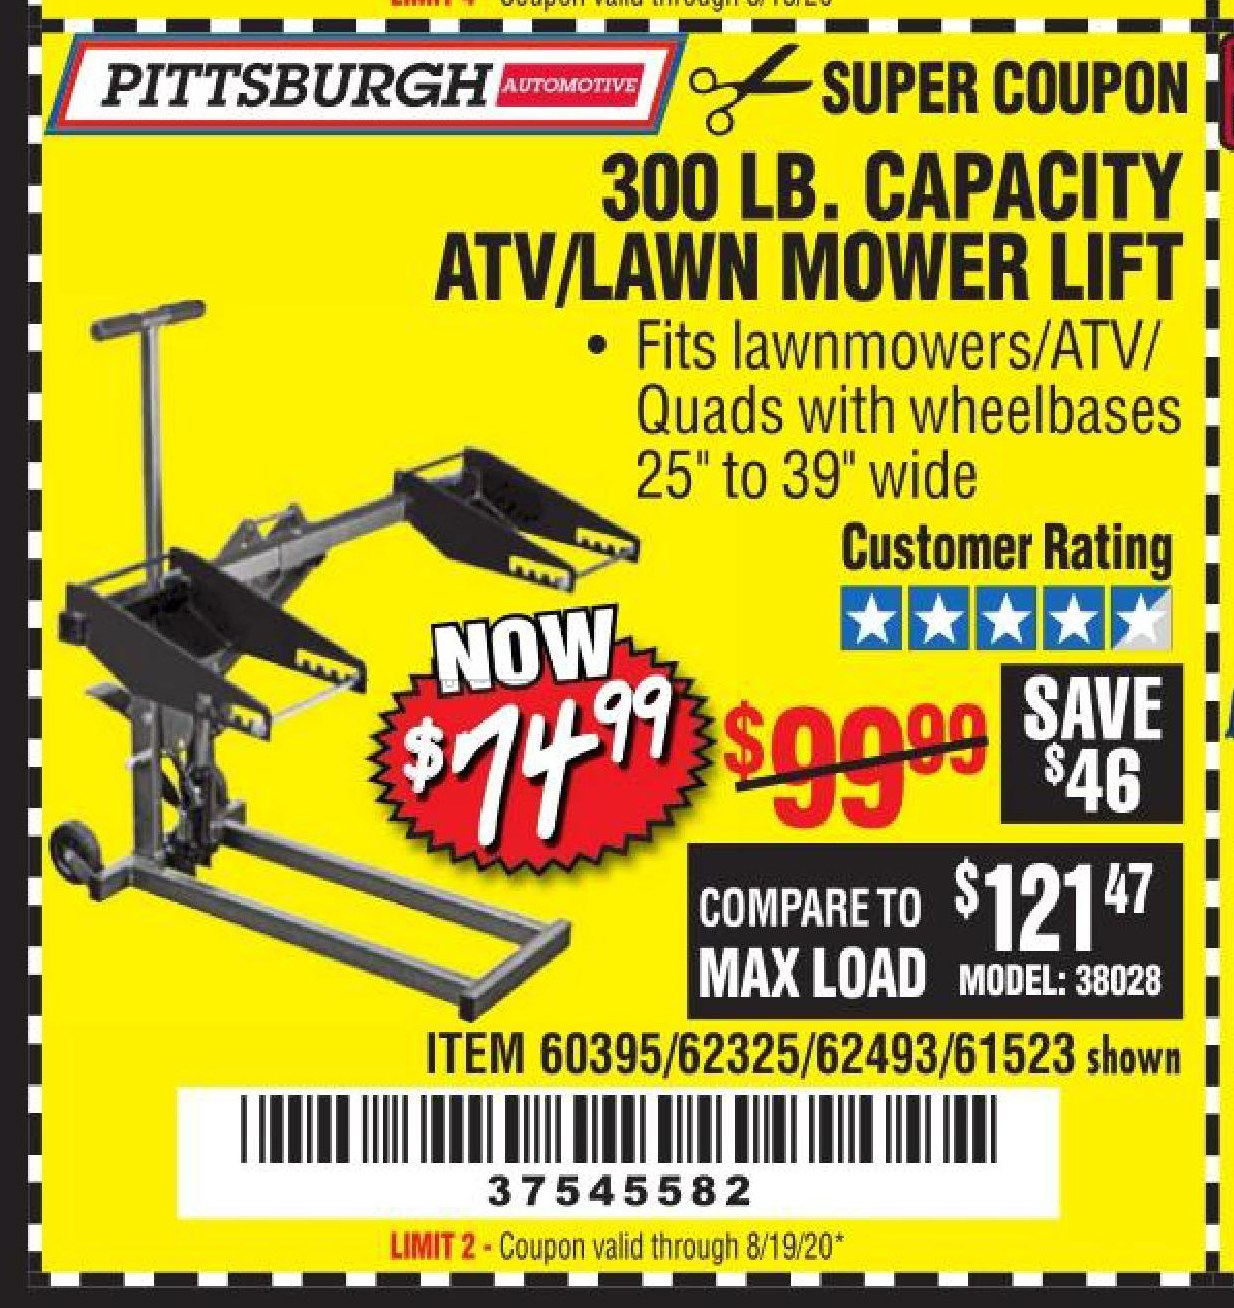 Harbor Freight ATV/LAWN MOWER LIFT coupon